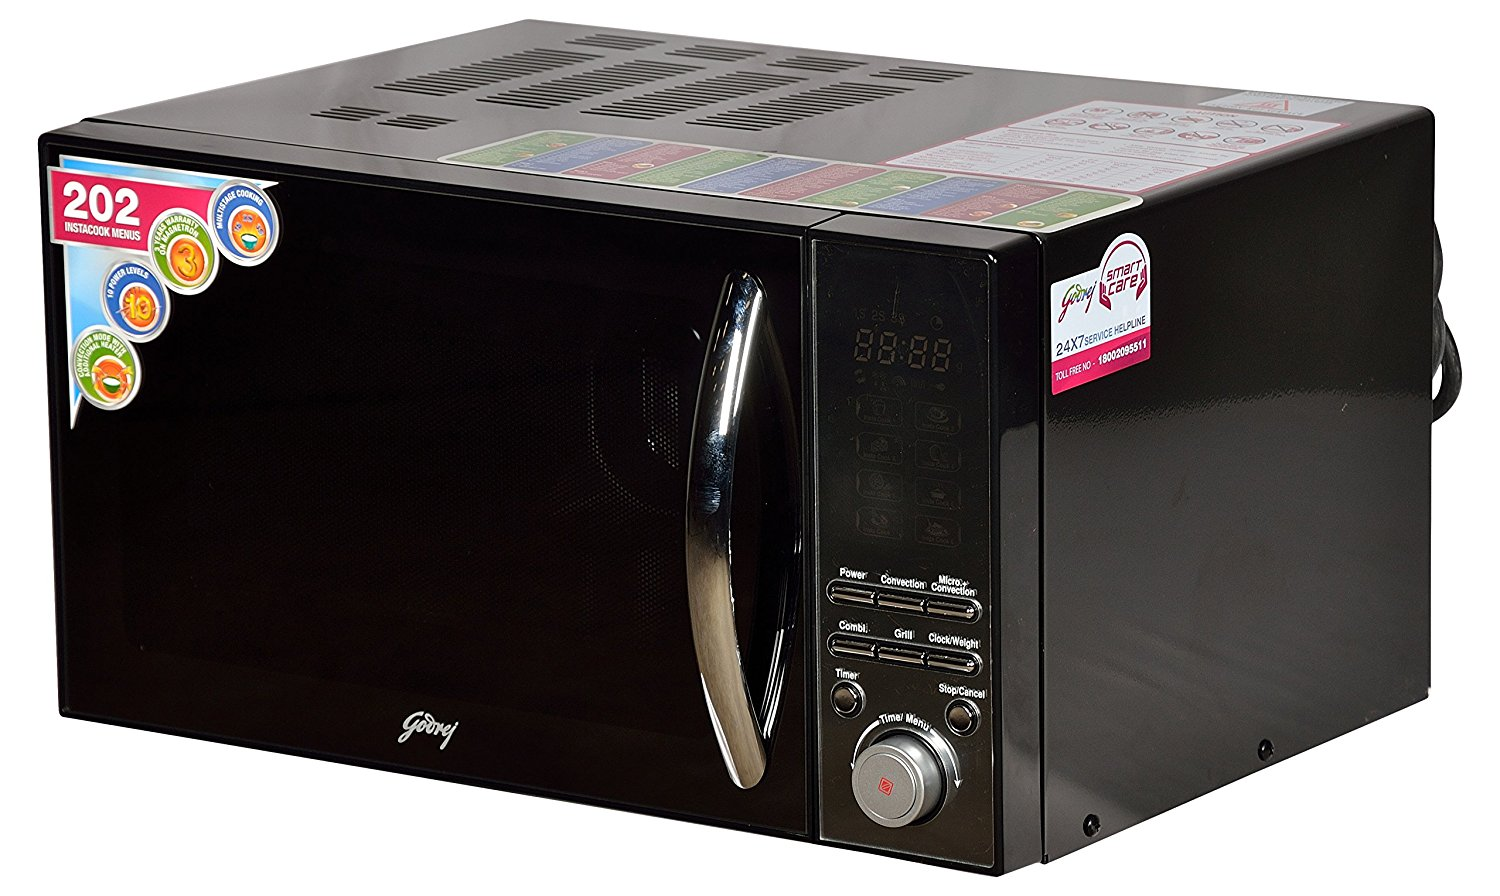 samsung microwave oven 21 liters